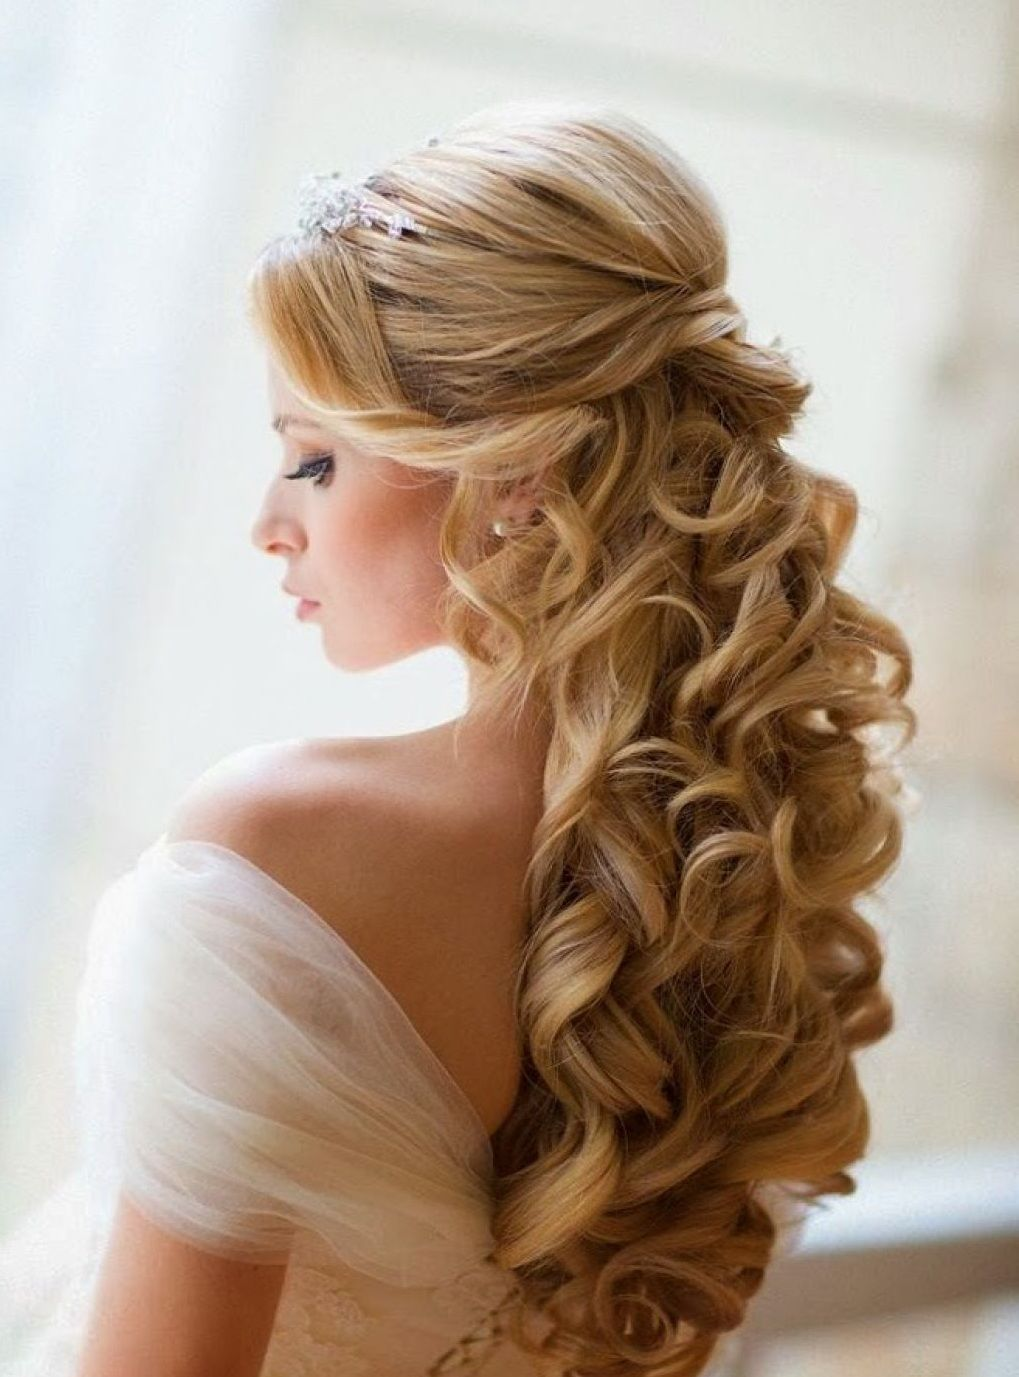 updo hairstyles for long hair tutorial | hair do's